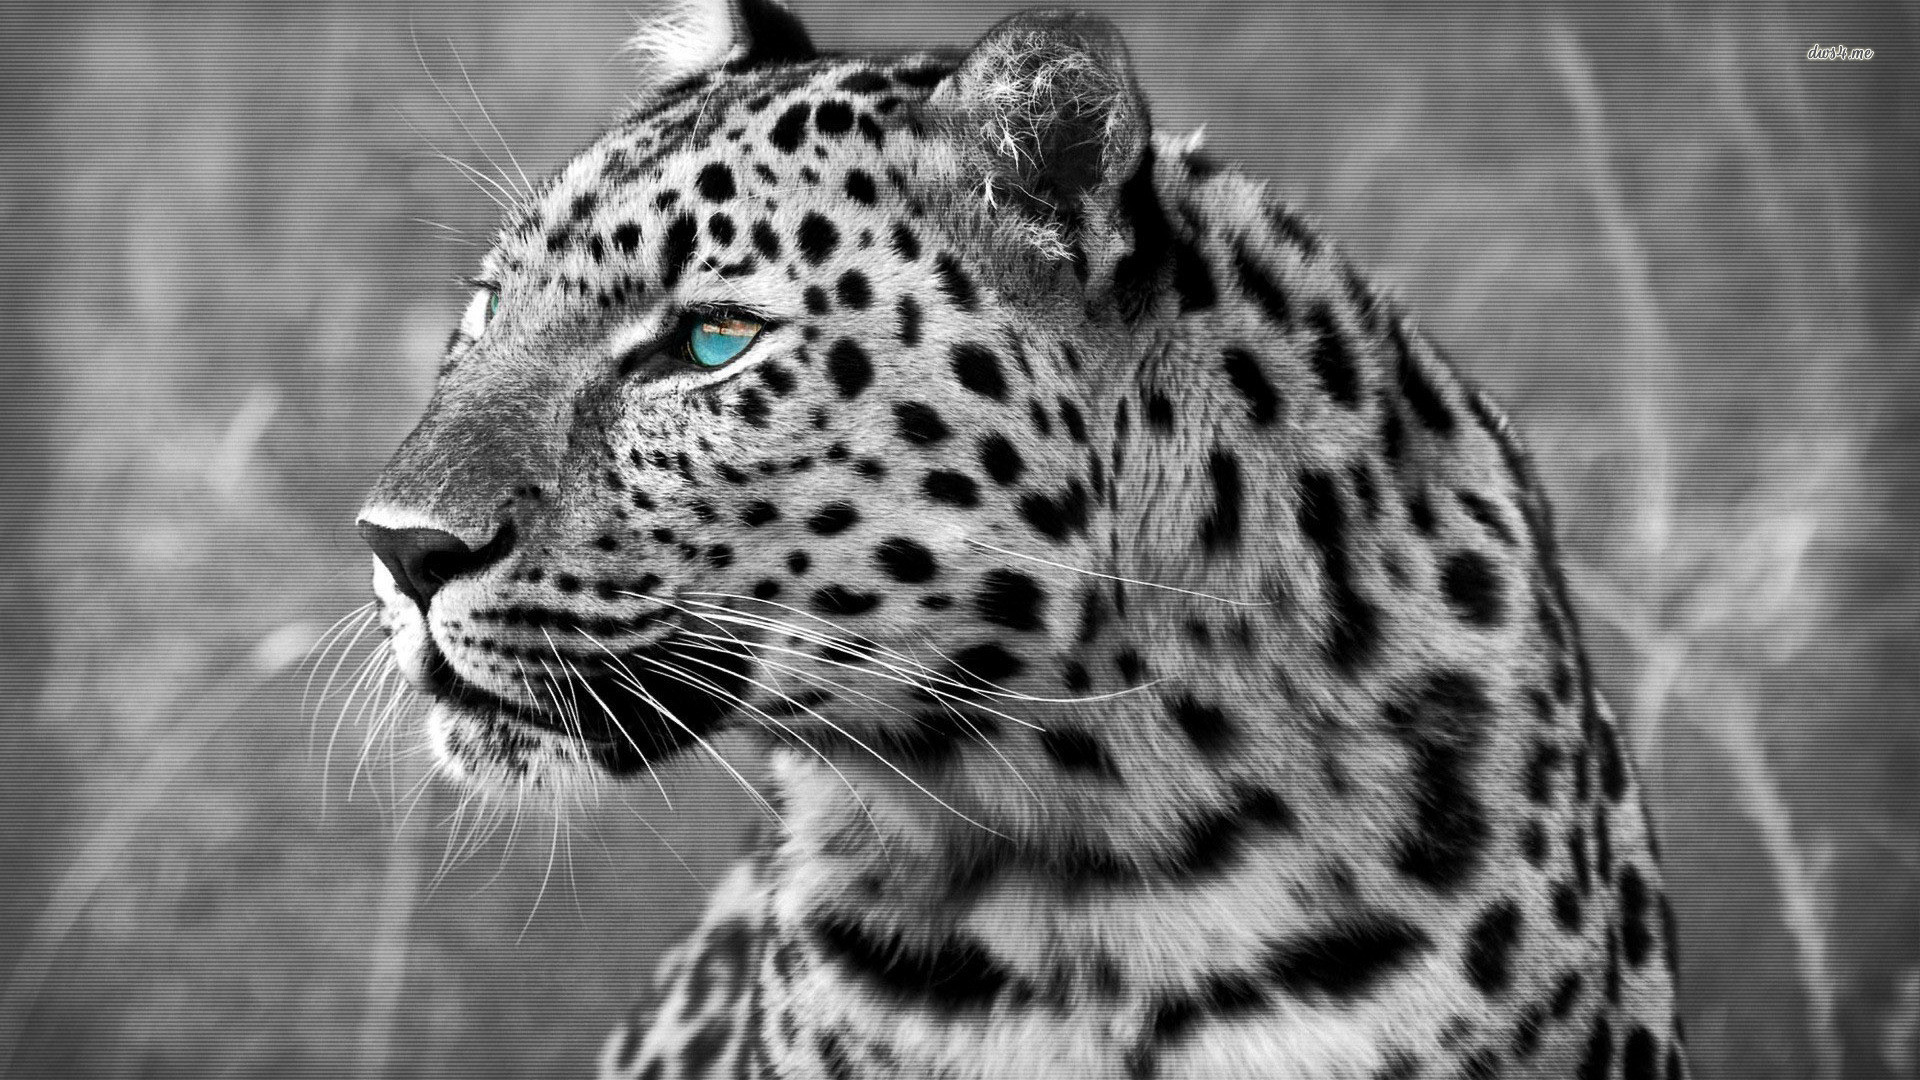 Snow Leopard Wallpaper Android Apps on Google Play 1280×720 Snow Leopard  Wallpaper (43